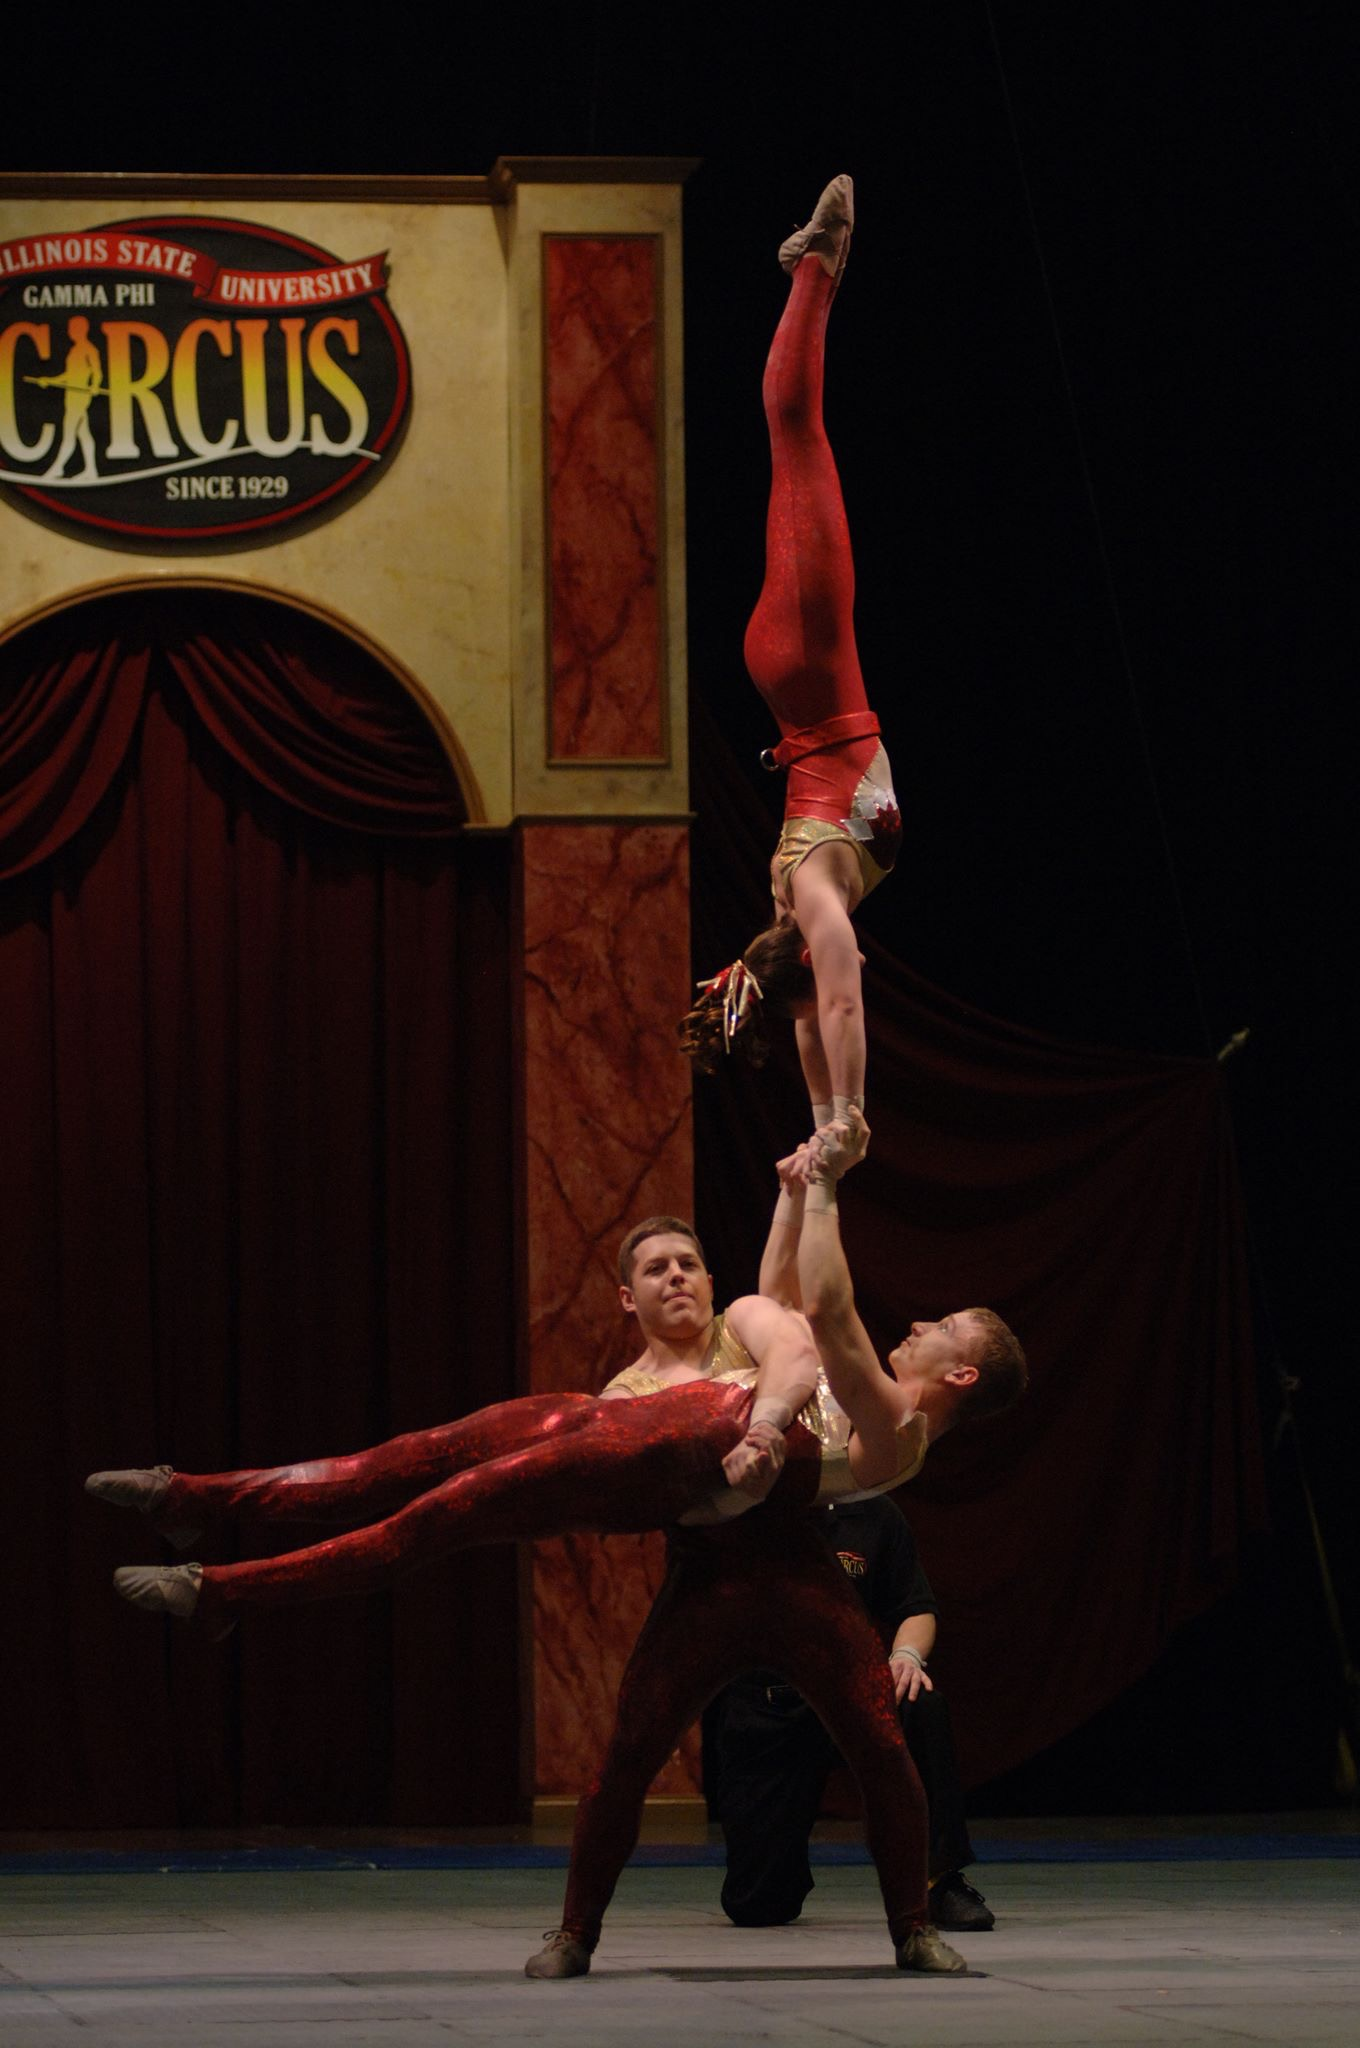 Rebecca Nemecek performing hand balancing in the Gamma Phi Circus at Illinois State University. Rebecca's husband is the base (holding her and the other performer).